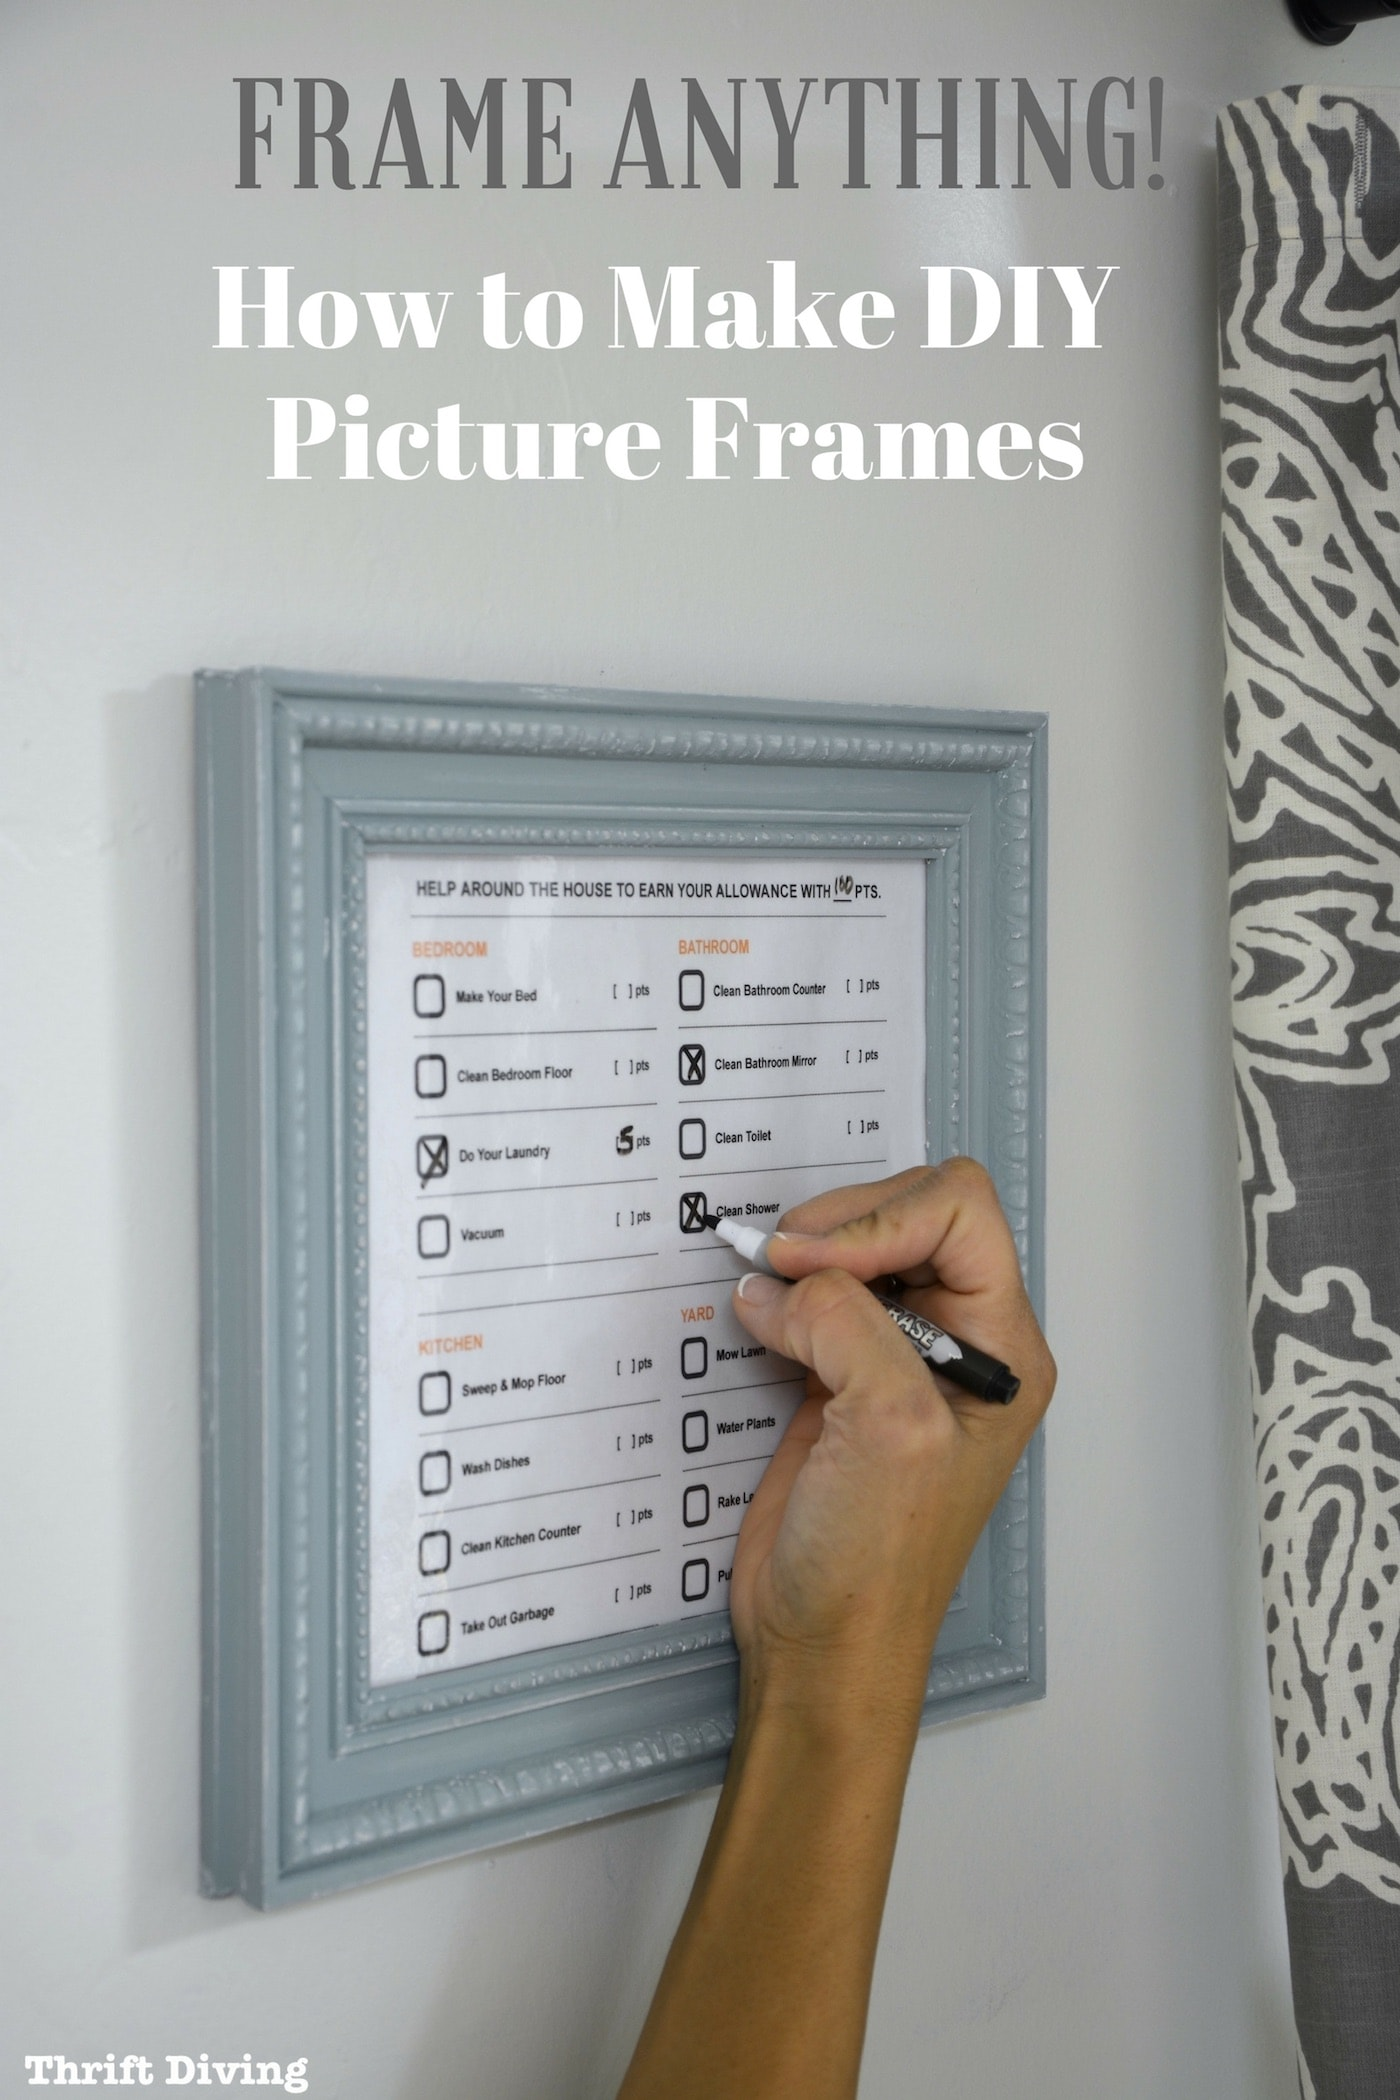 How To Frame Pictures How To Make Your Own Diy Picture Frames Without Power Tools